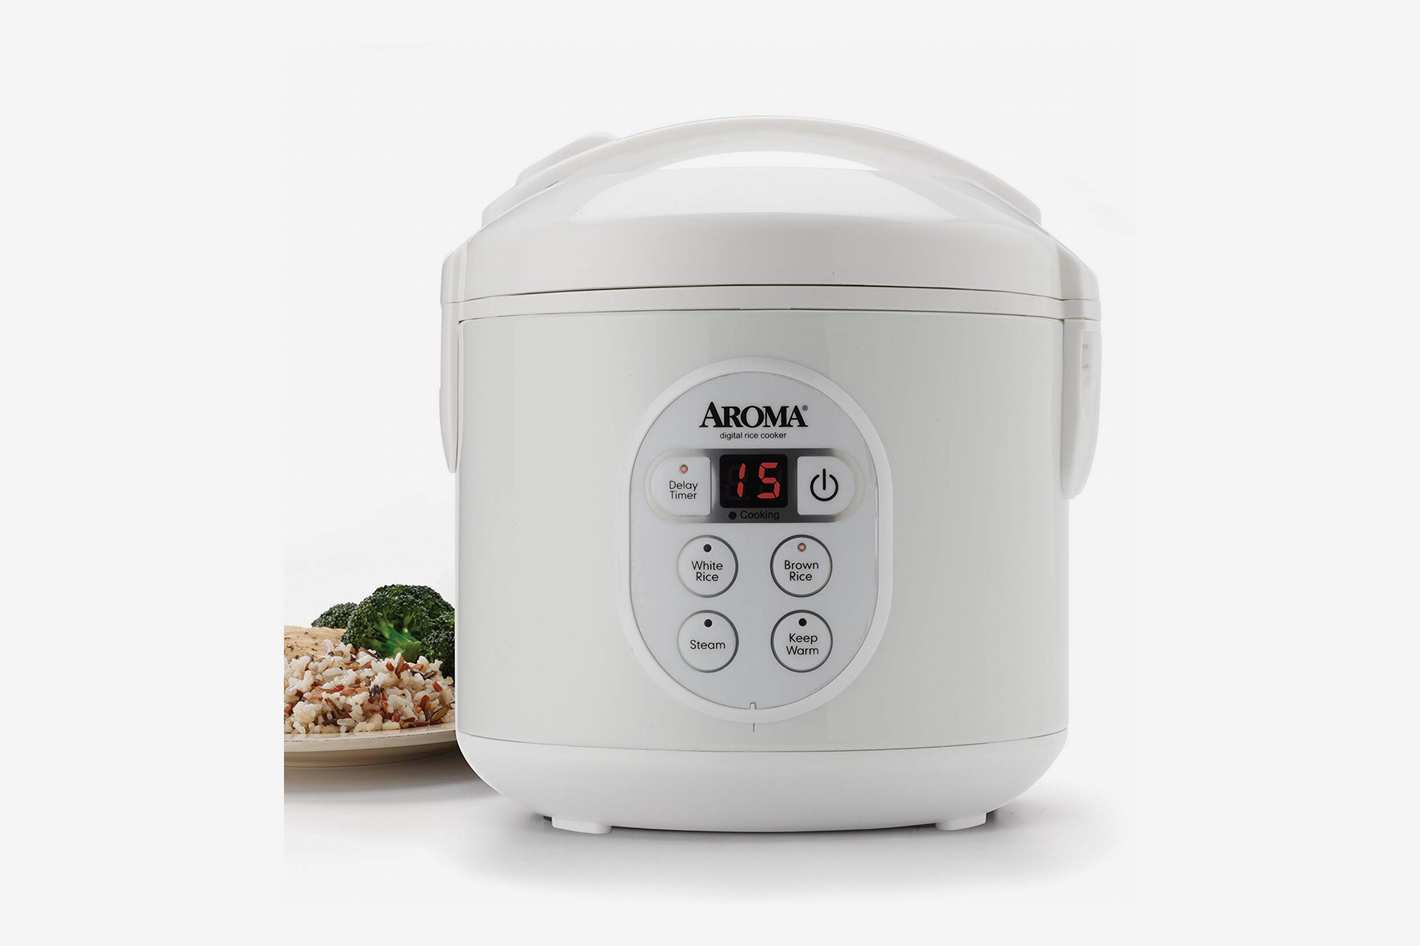 Aroma Housewares Digital Rice Cooker and Food Steamer